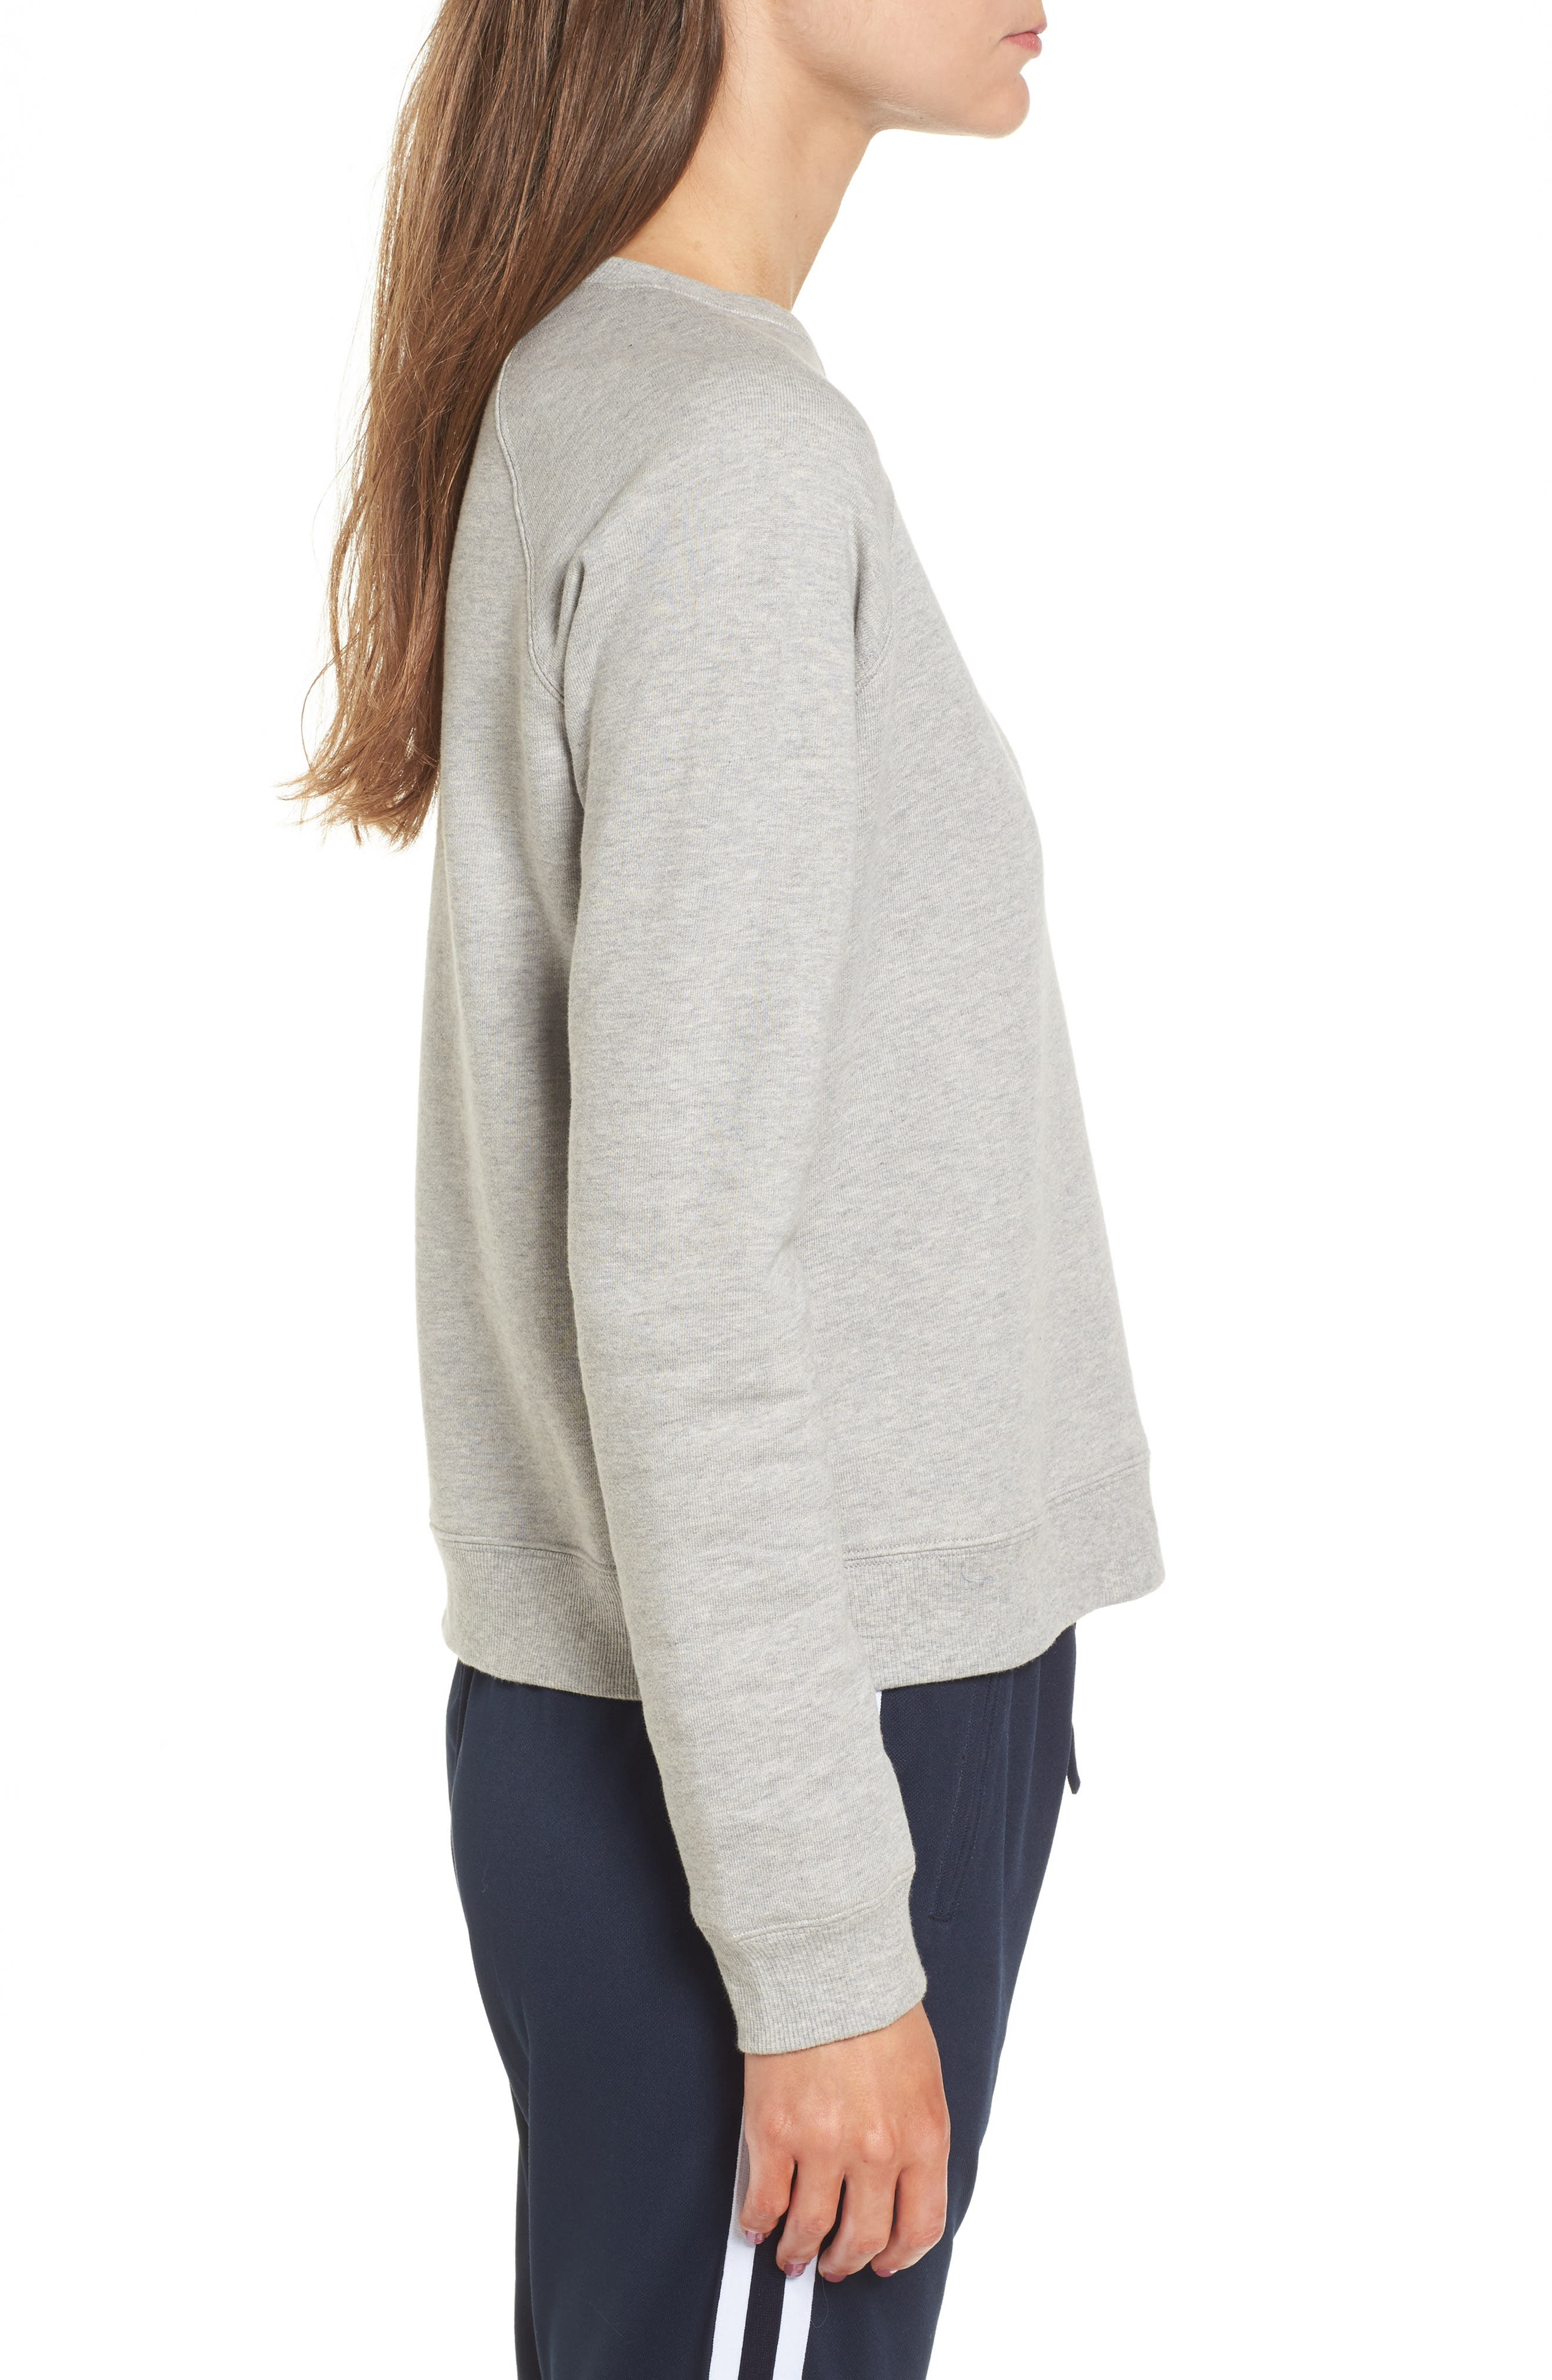 Out of Office Sweatshirt,                             Alternate thumbnail 3, color,                             039